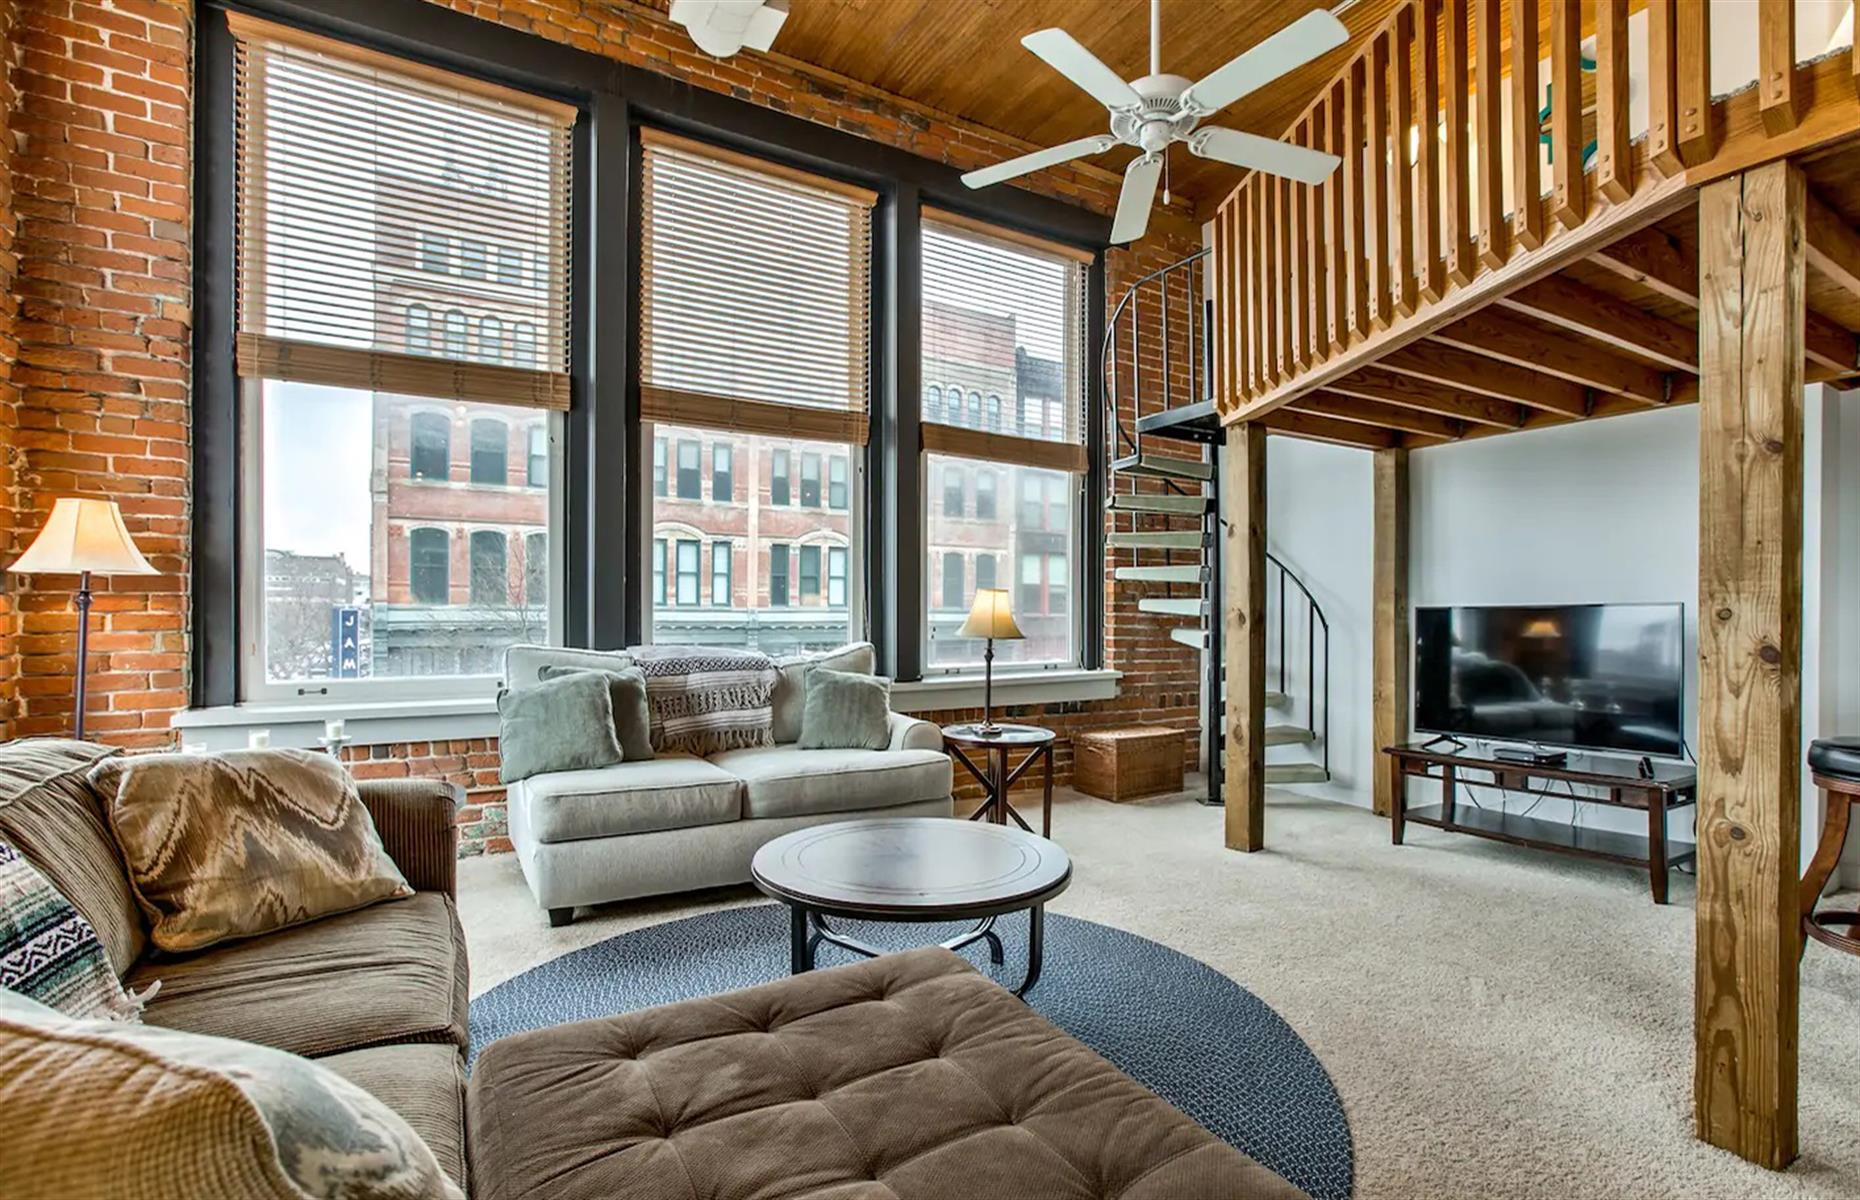 Slide 29 of 52: Centrally located in Omaha's famous Old Market district, this bright and cozy loft has two bedrooms, exposed red brick walls and everything you might need to enjoy a wonderful break. If you prefer staying in and making the most of your time in the loft, there are board games, a fully equipped kitchen for whipping up delicious meals and a large, cozy sofa to sink into and watch a movie.